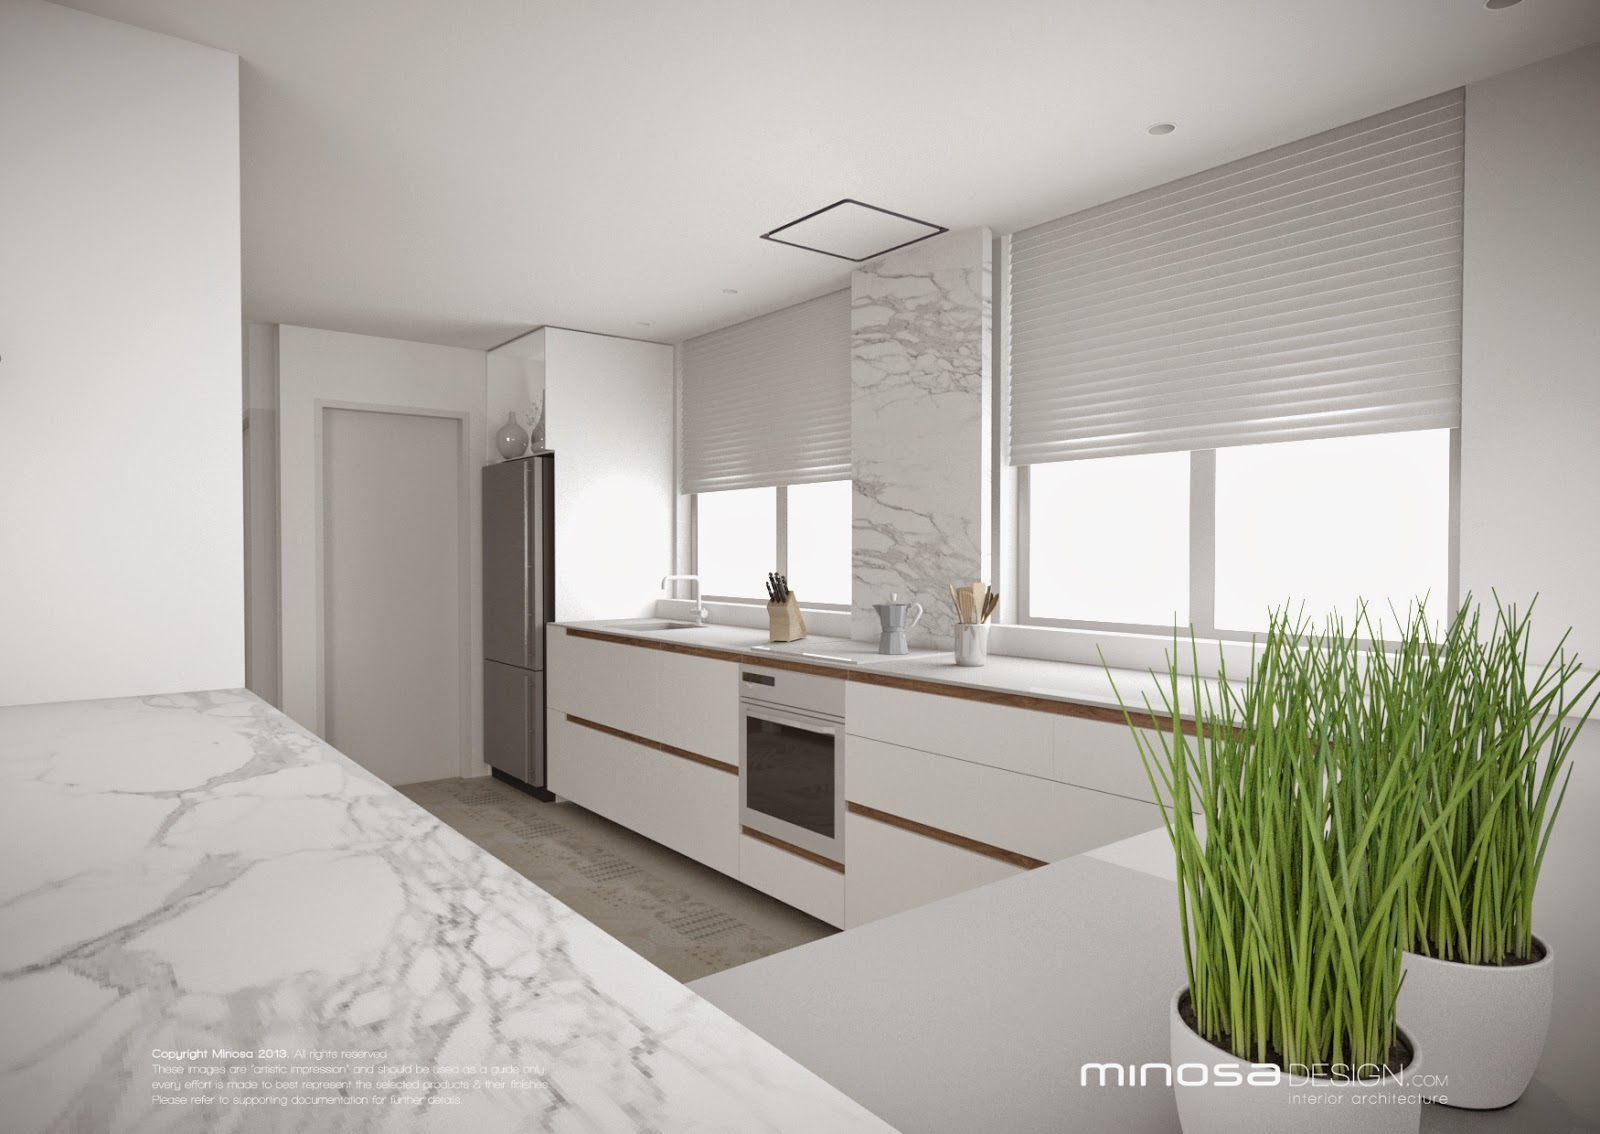 Minosa: White Kitchen design - fresh or boring?